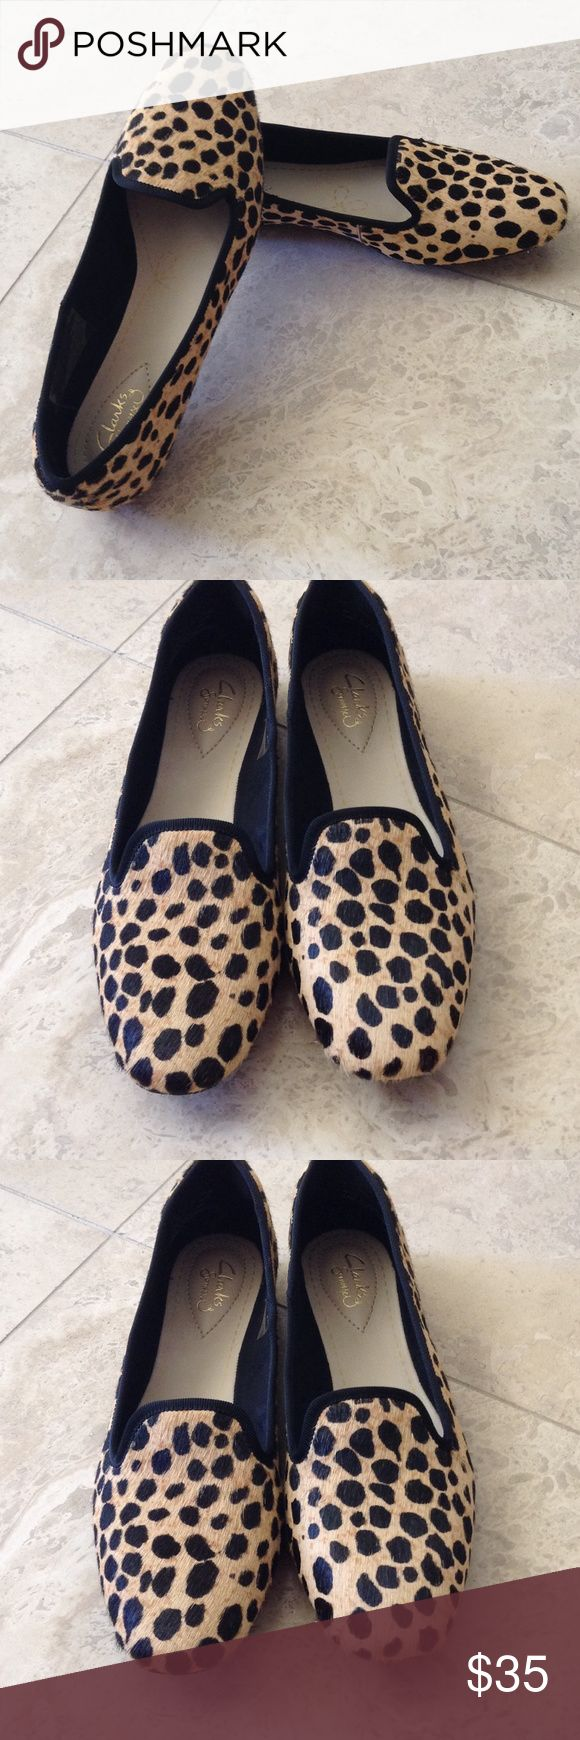 BRAND NEW LEOPARD PRINT CLARK SHOES Very nicely made comfortable leopard print shoes Clarks Shoes Flats & Loafers